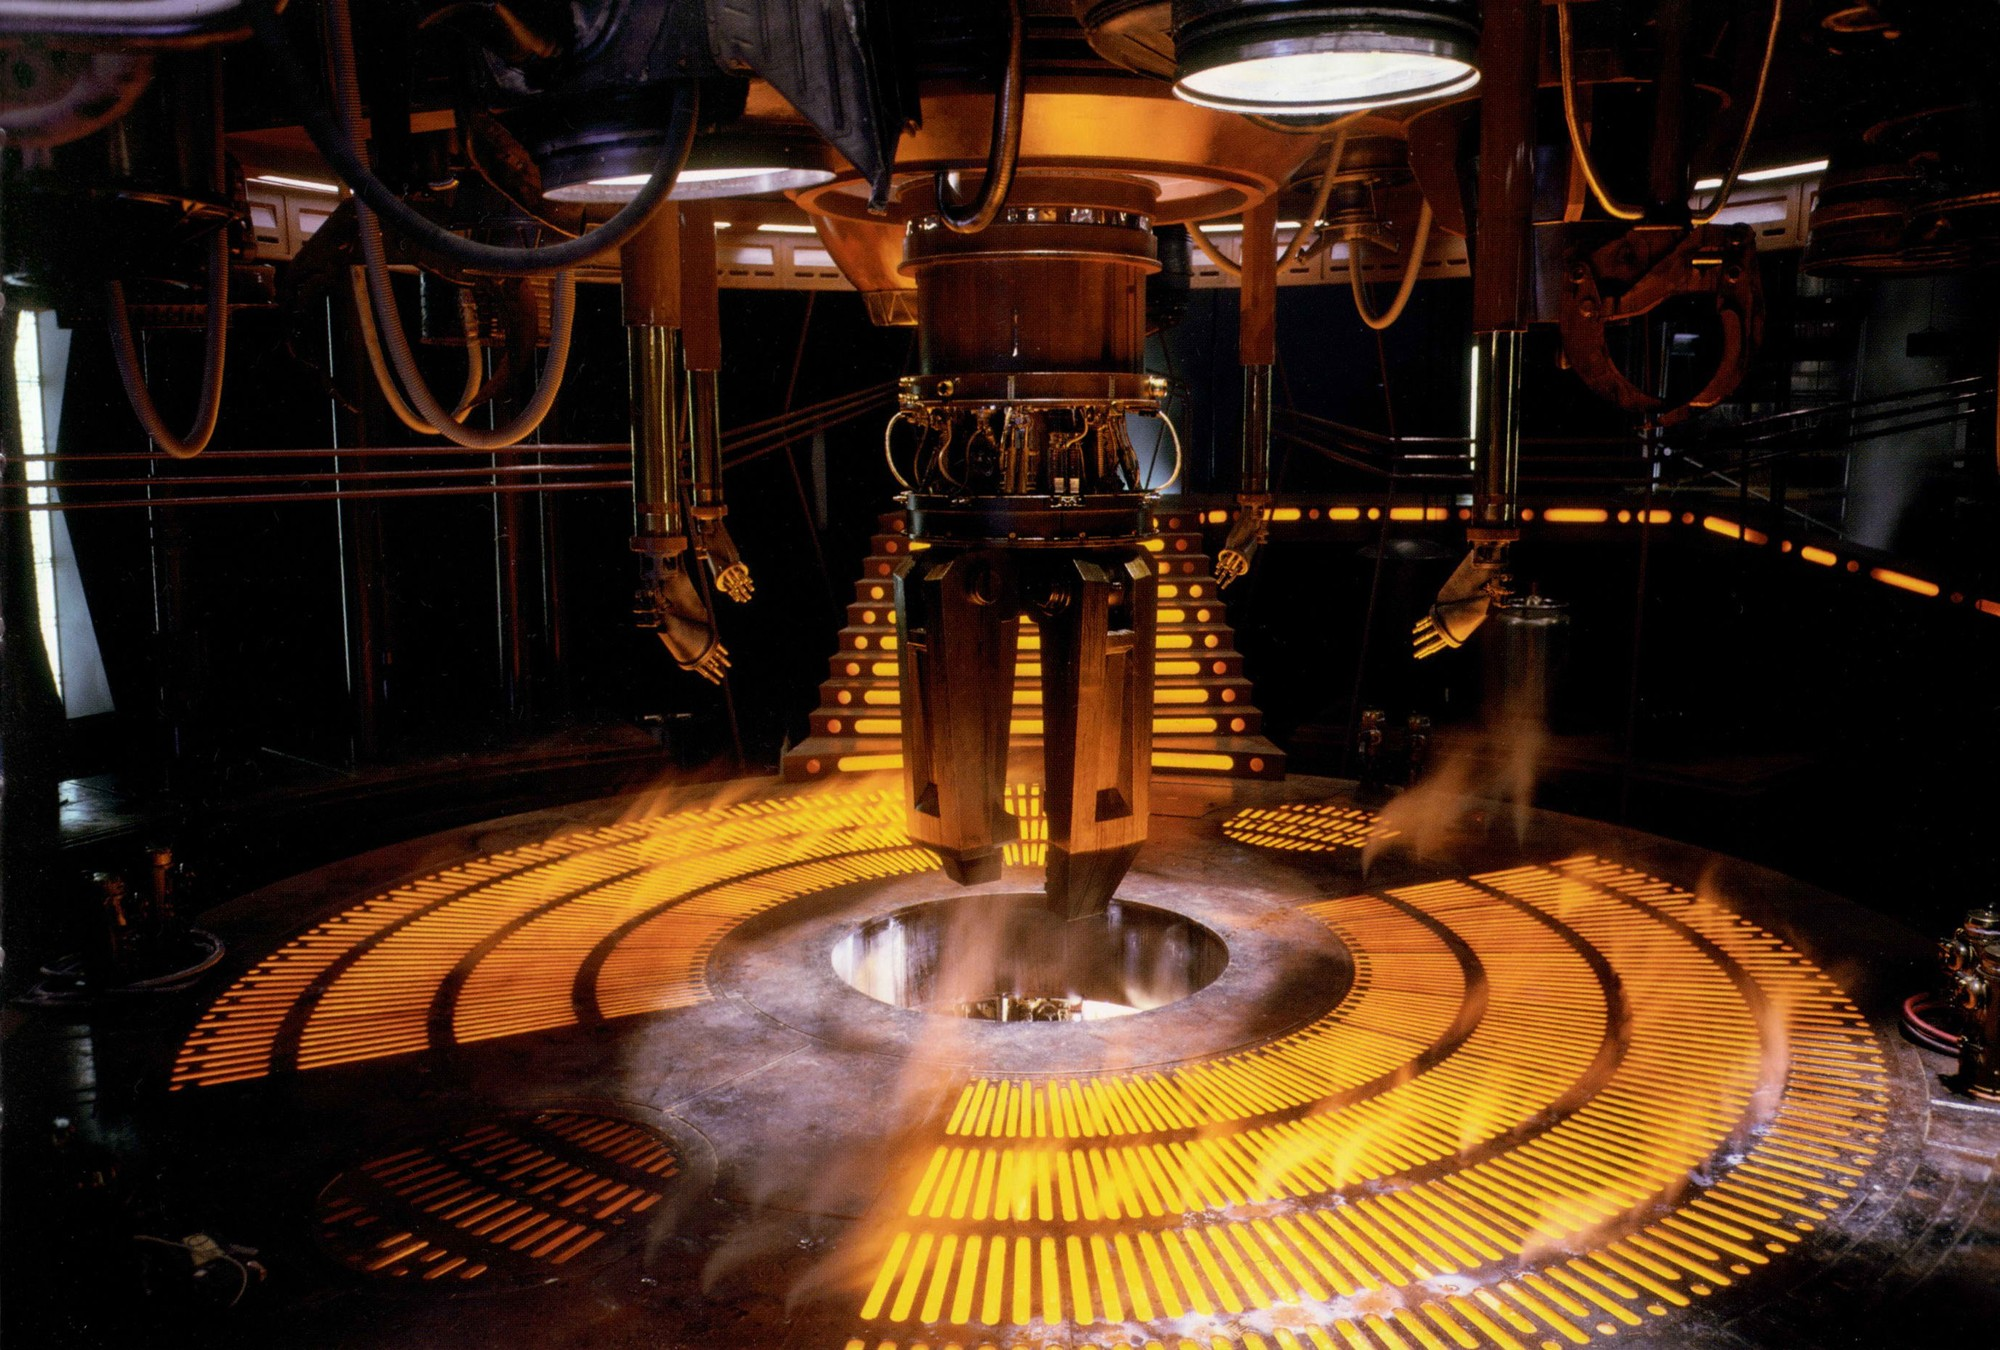 Carbon Freezing Chamber Wookieepedia The Star Wars Wiki